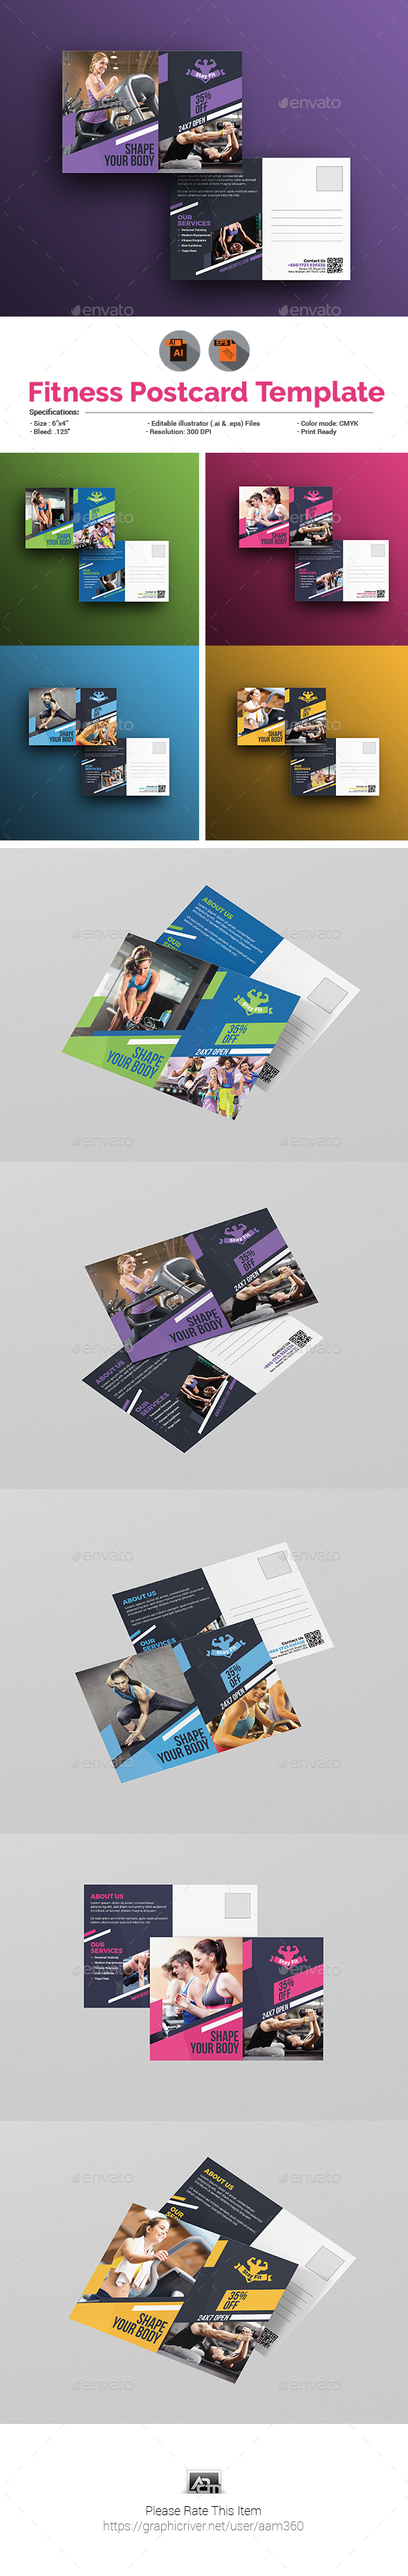 Sports | Fitness | Gym Postcard Template - Cards & Invites Print Templates